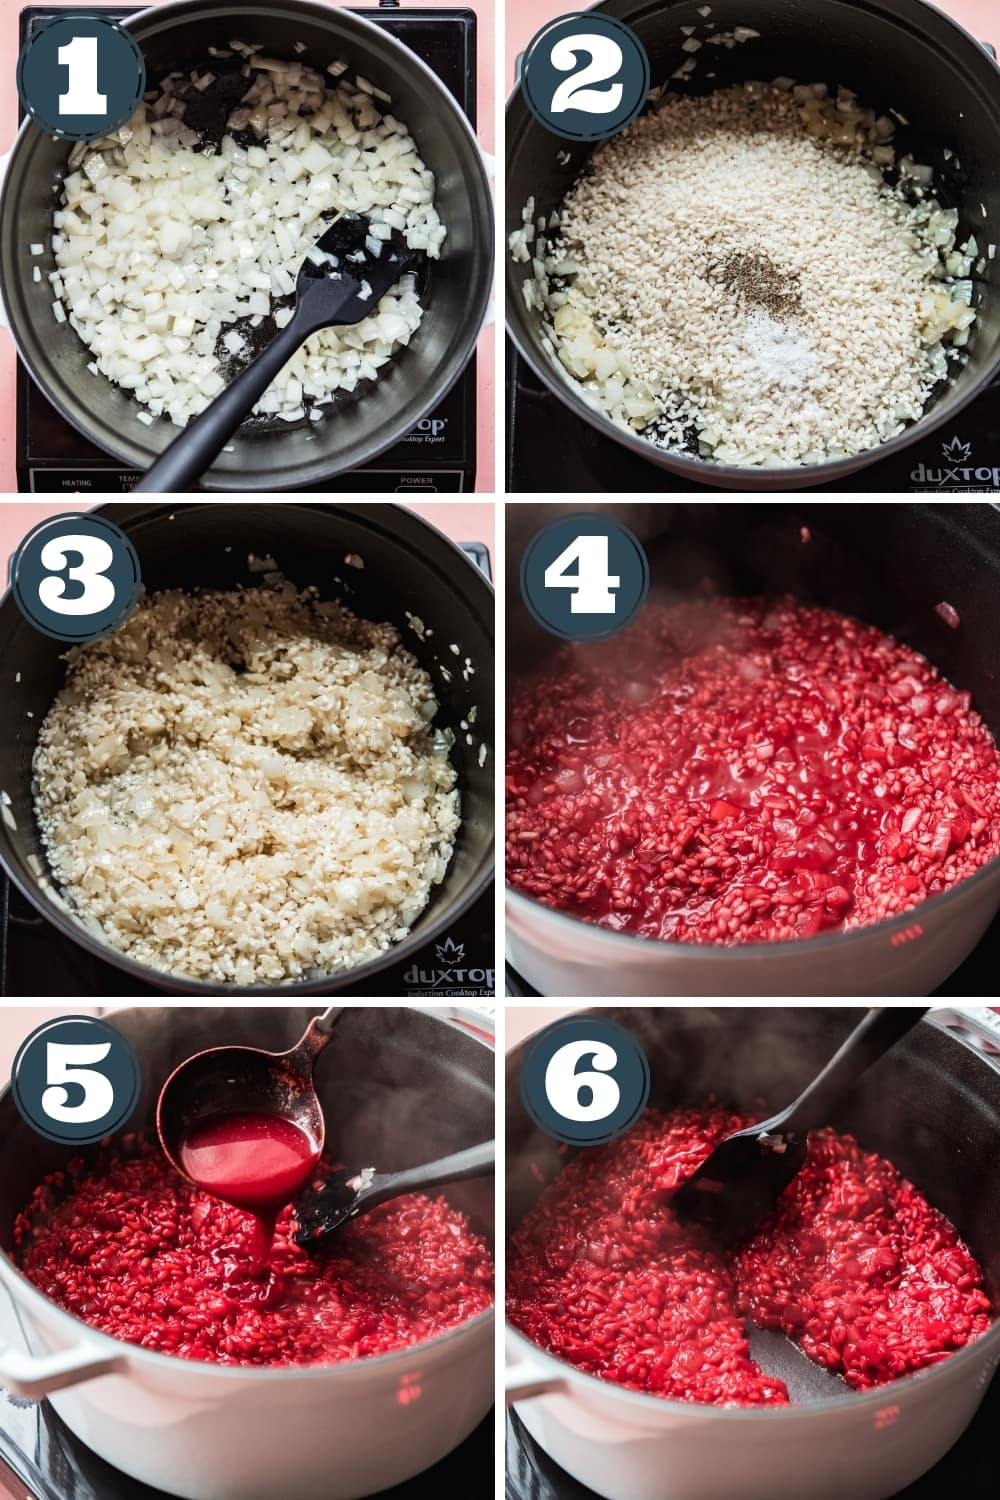 step-by-step photos for making beet risotto in a large pot.